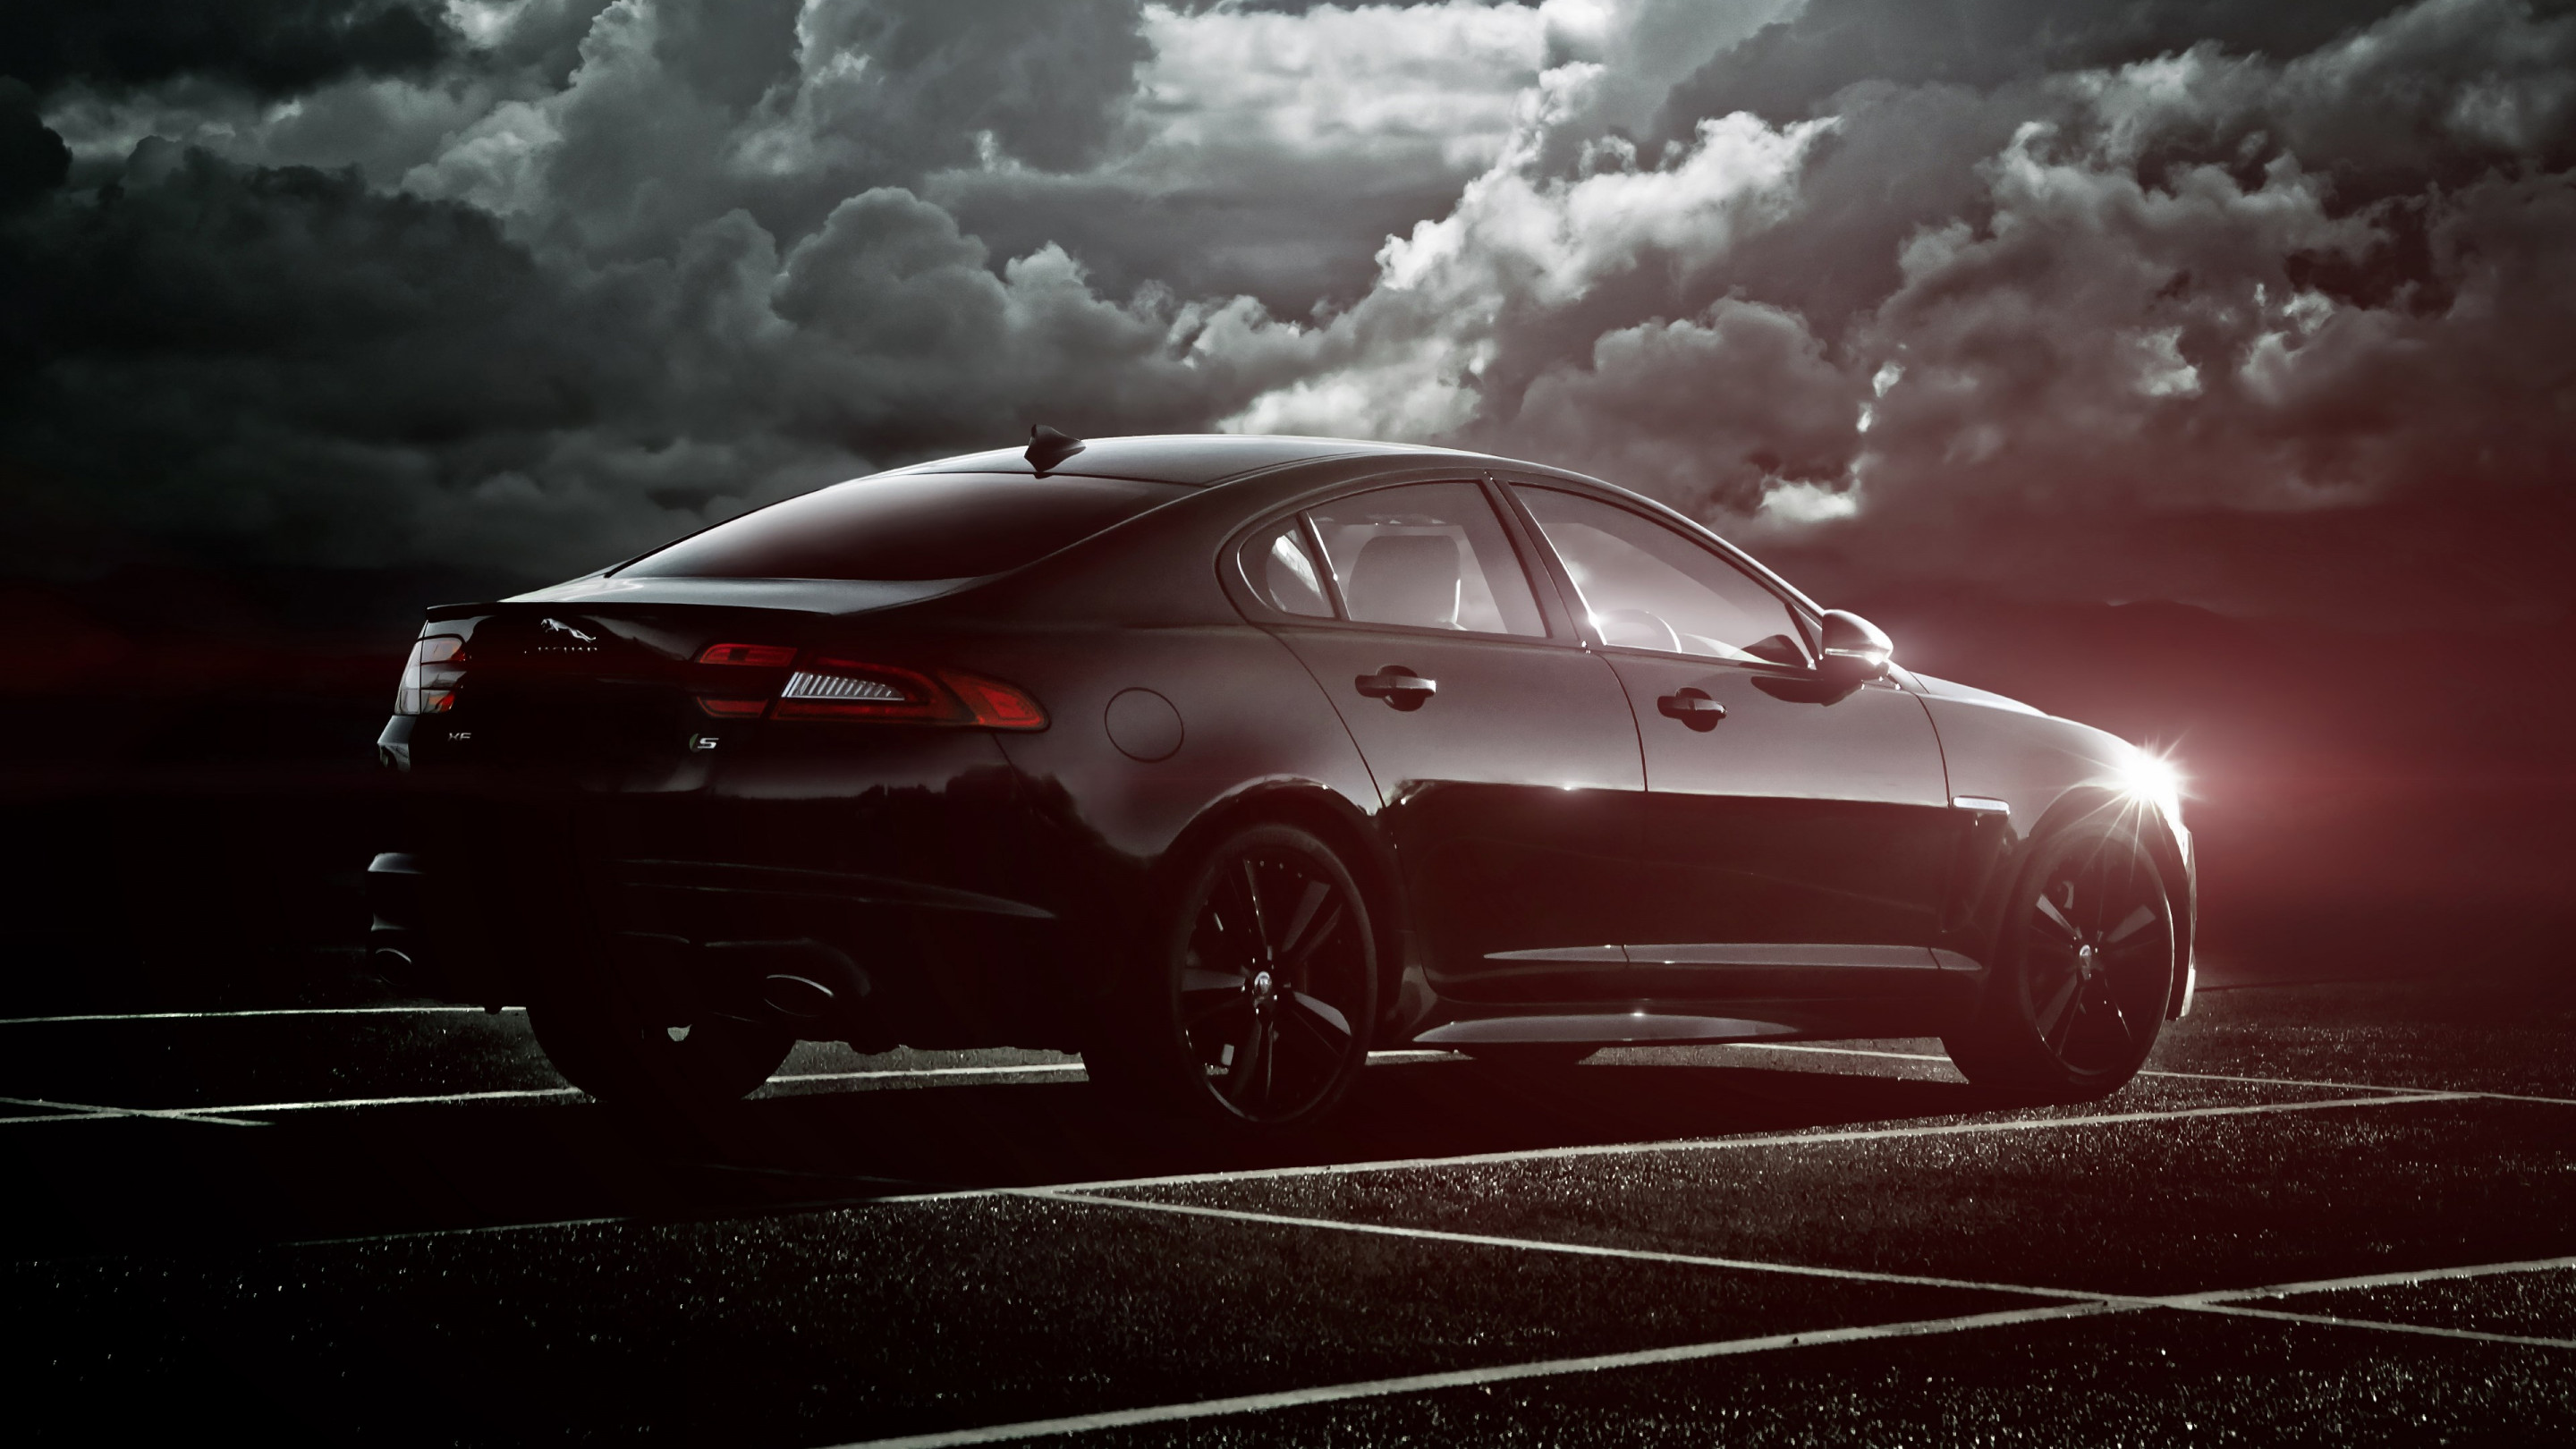 Jaguar XF S wallpaper 2880x1620